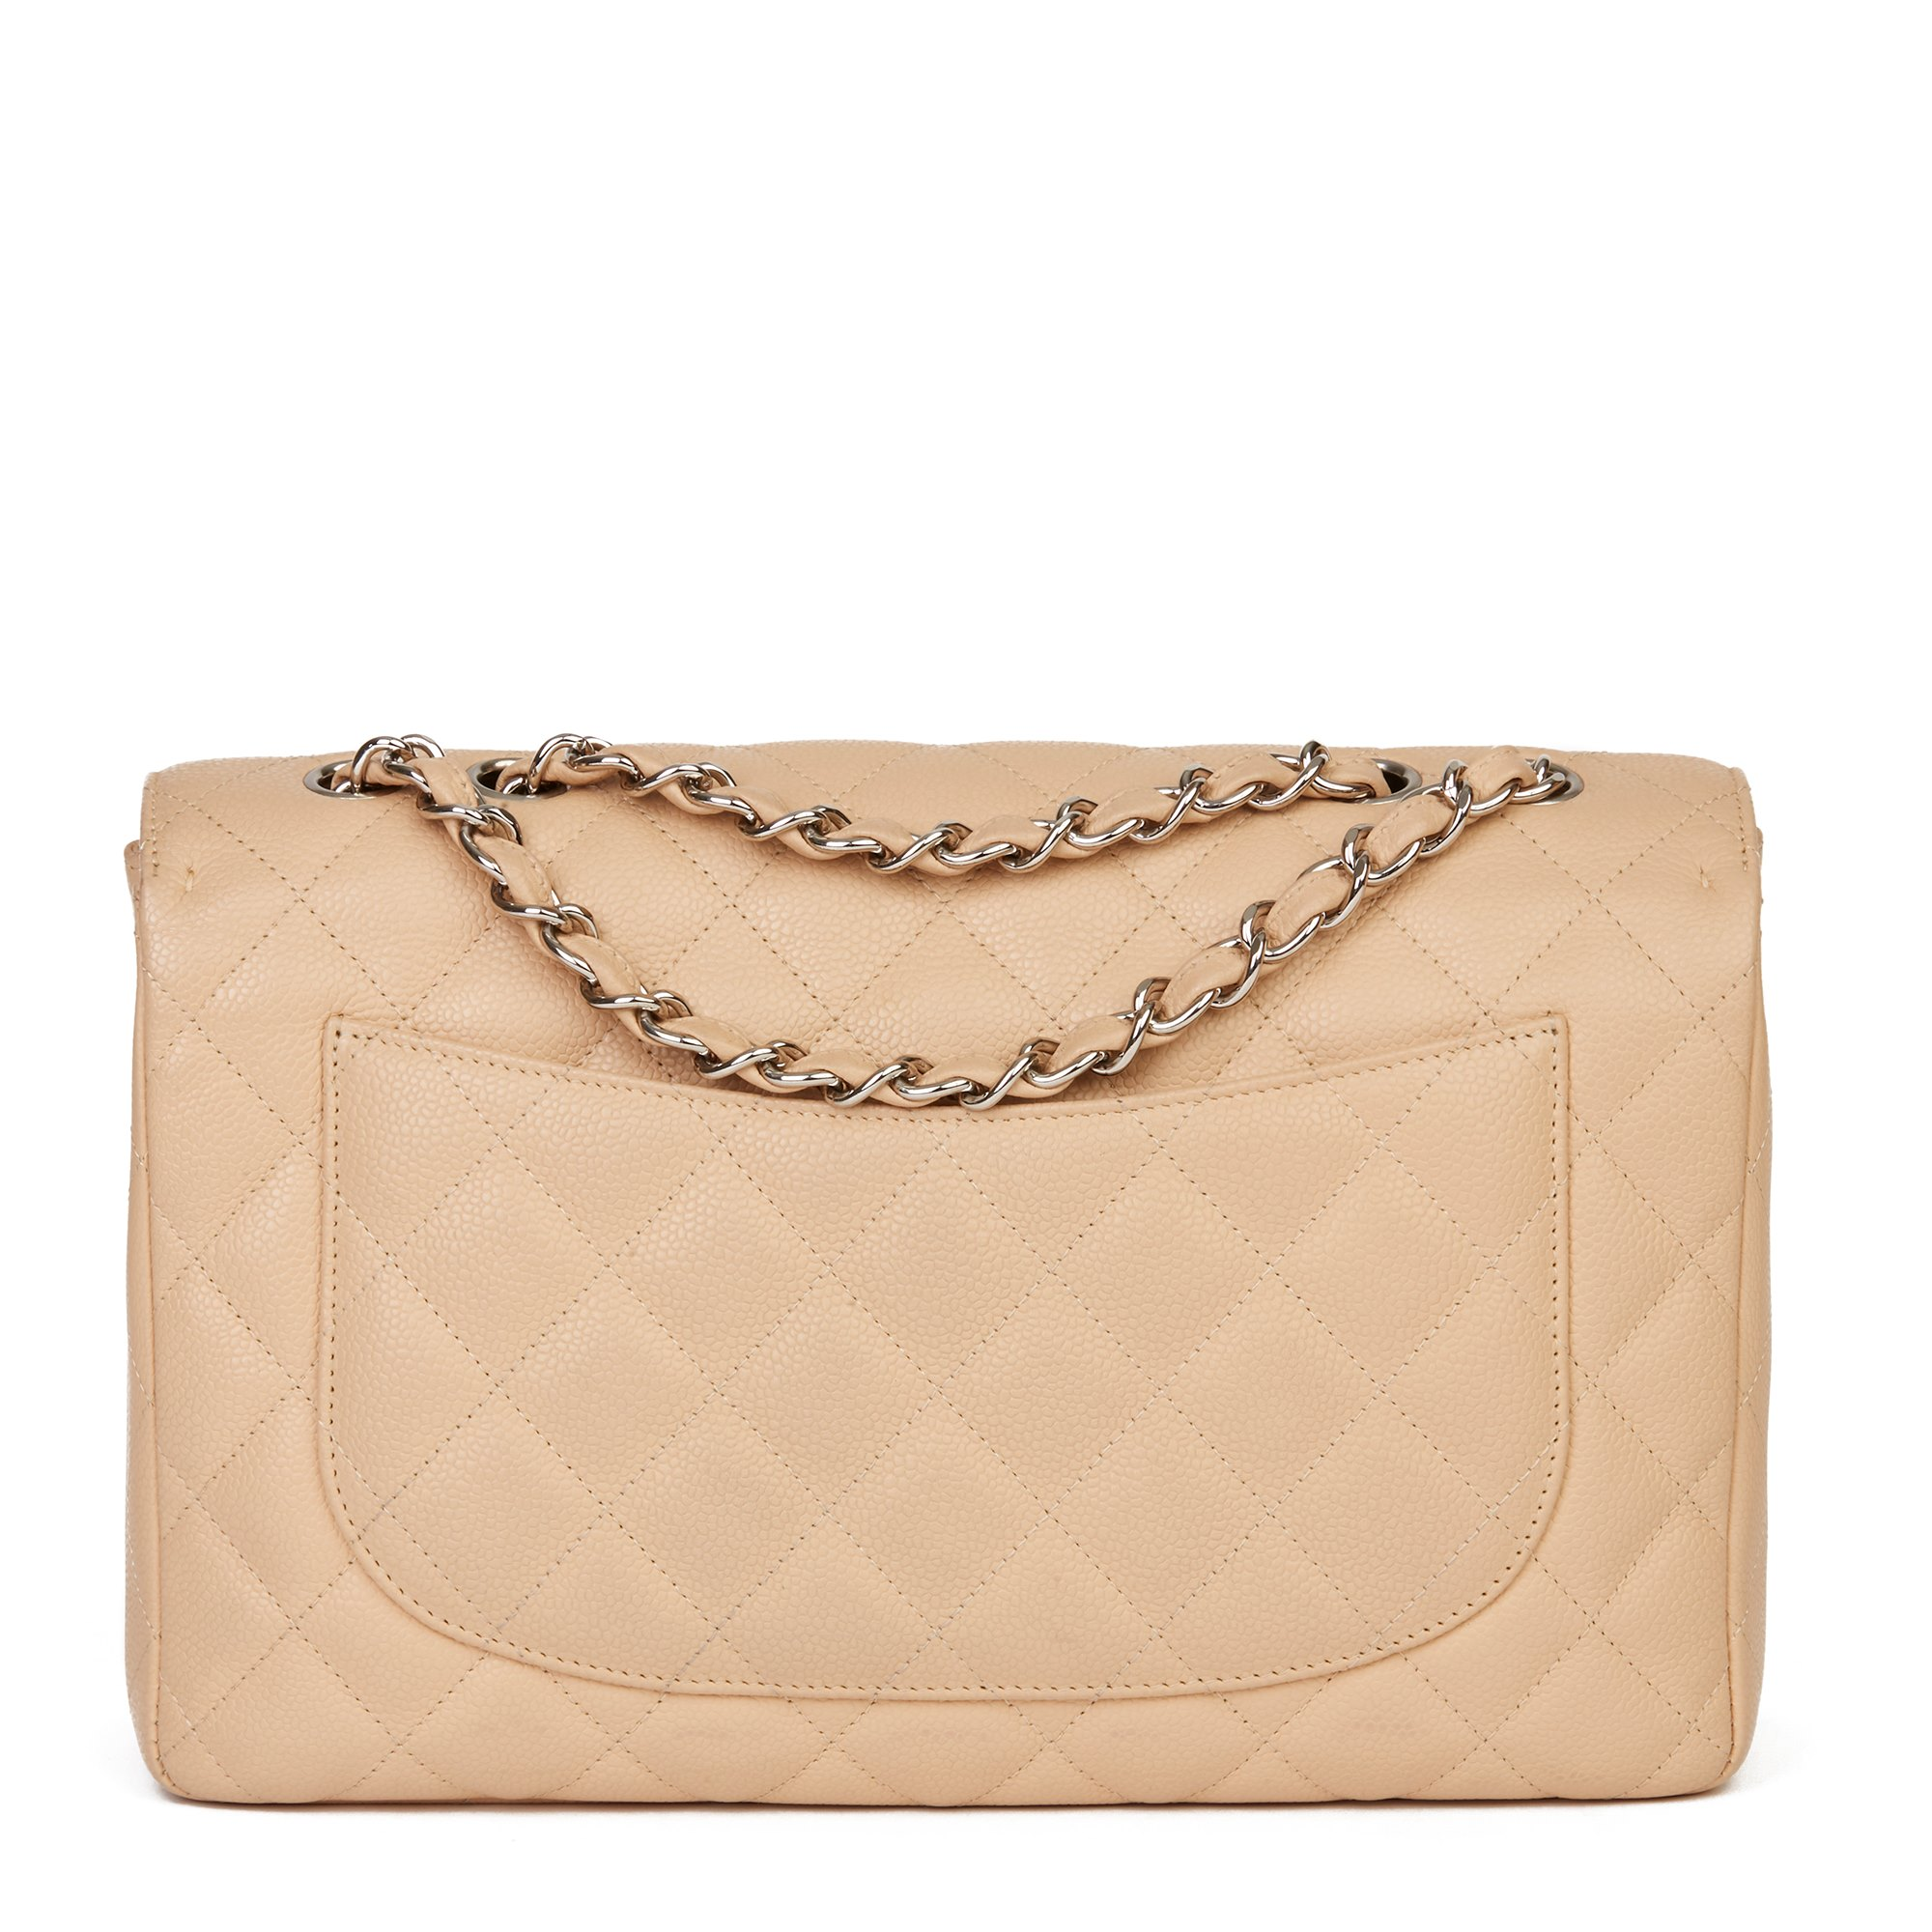 Chanel Beige Quilted Caviar Leather Jumbo Classic Single Flap Bag